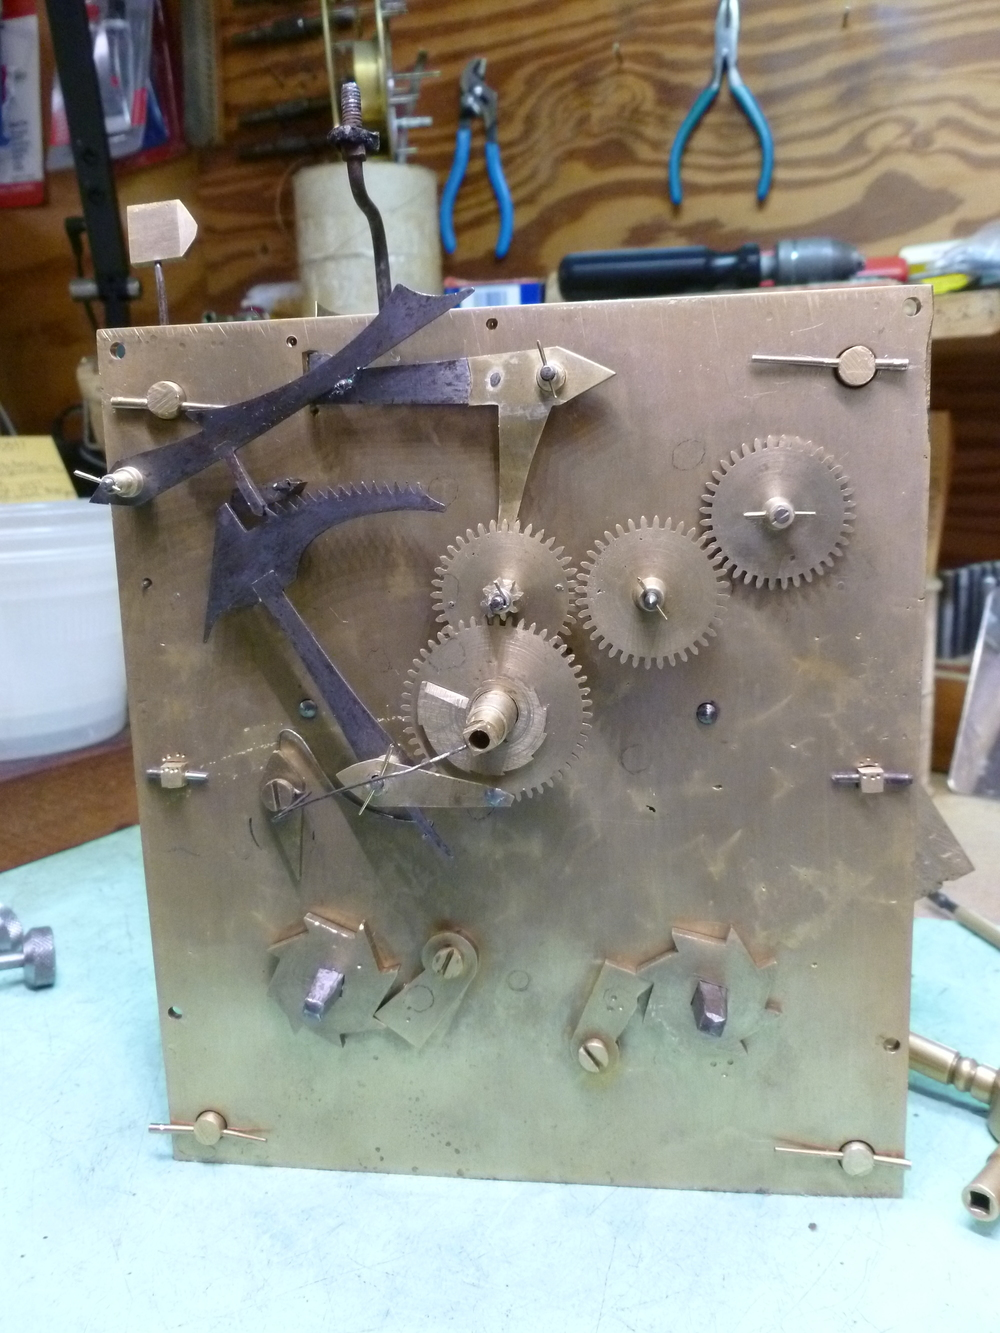 This is the front of the mechanism with the striking parts attached.